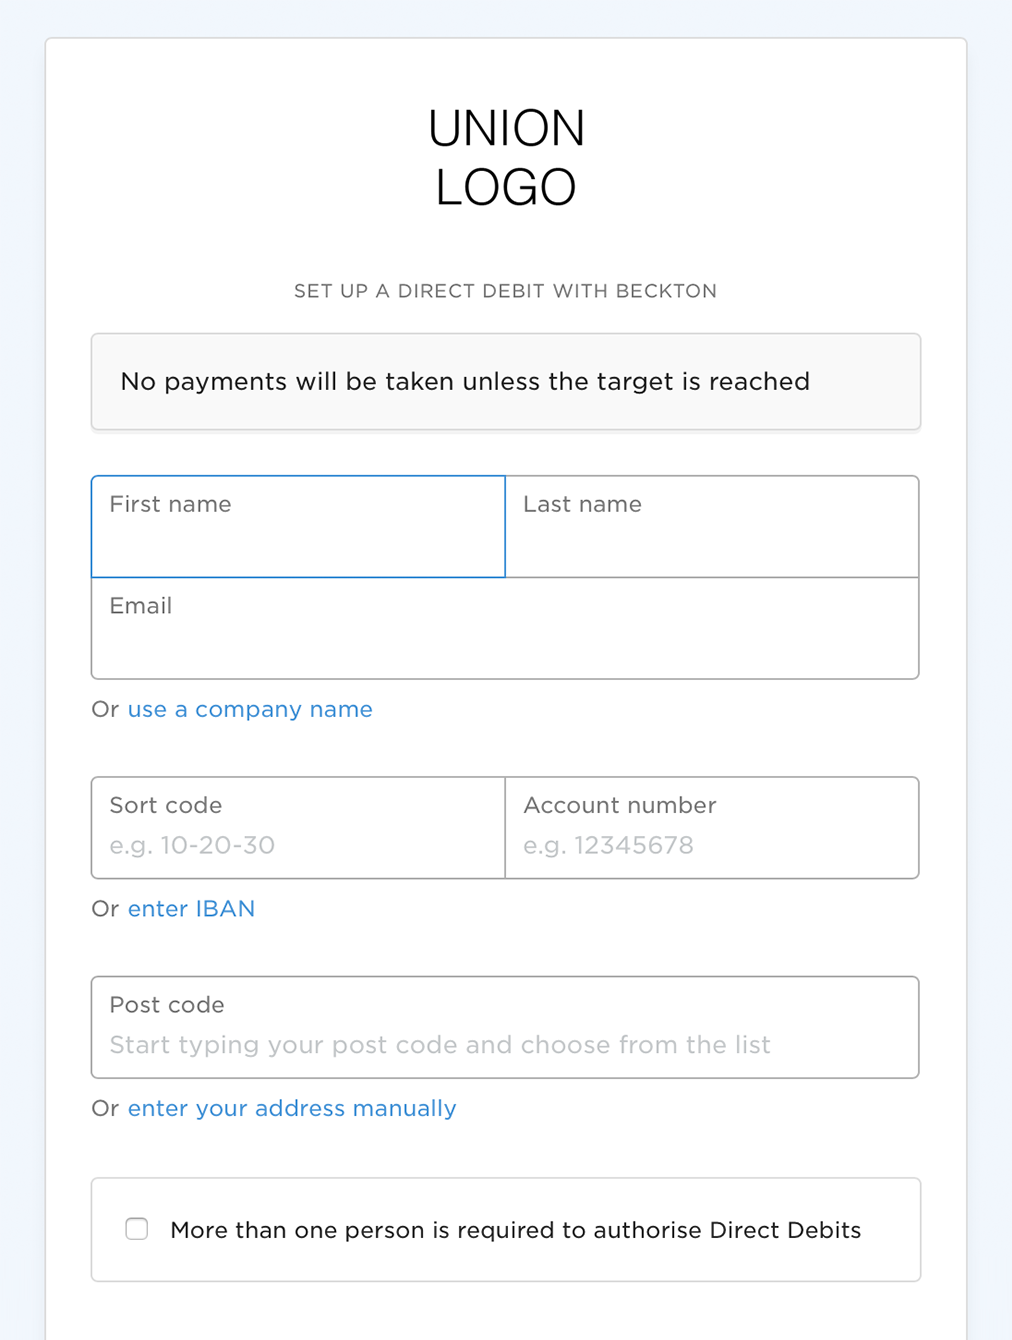 GoCardless Direct Debit page 1